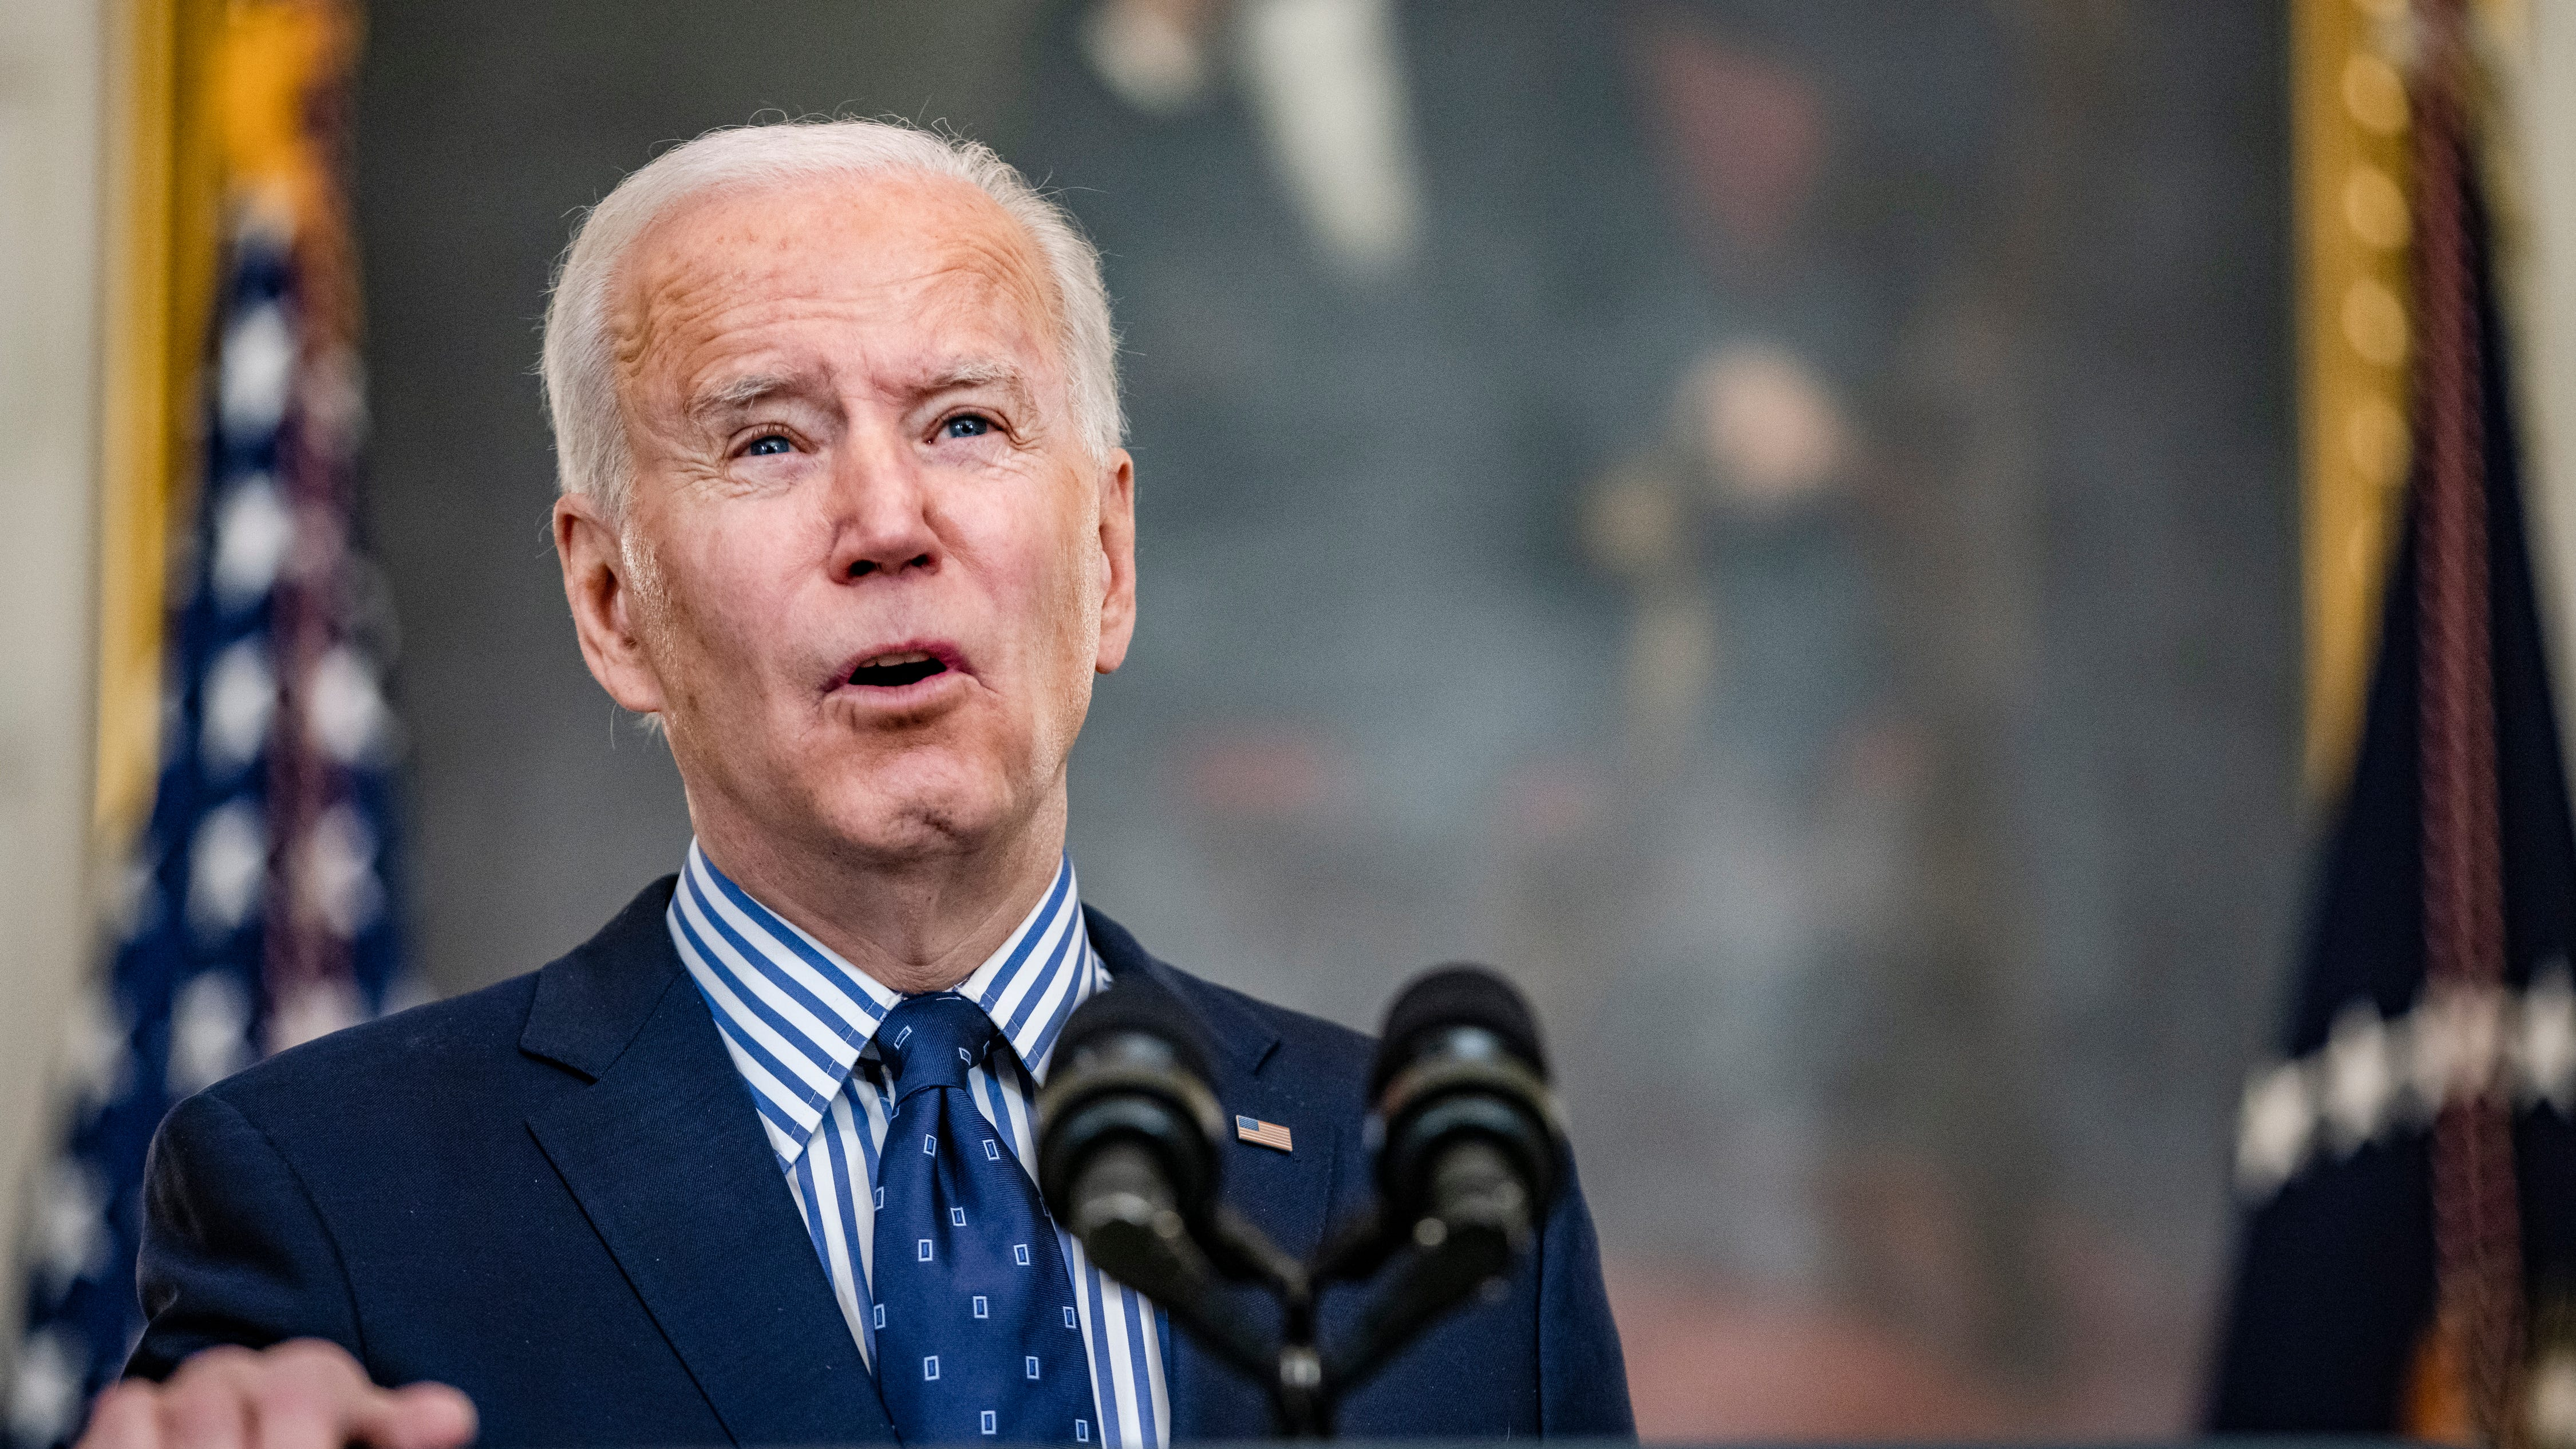 'America is coming back': Biden tells states to make all adults eligible for COVID-19 vaccines by May 1